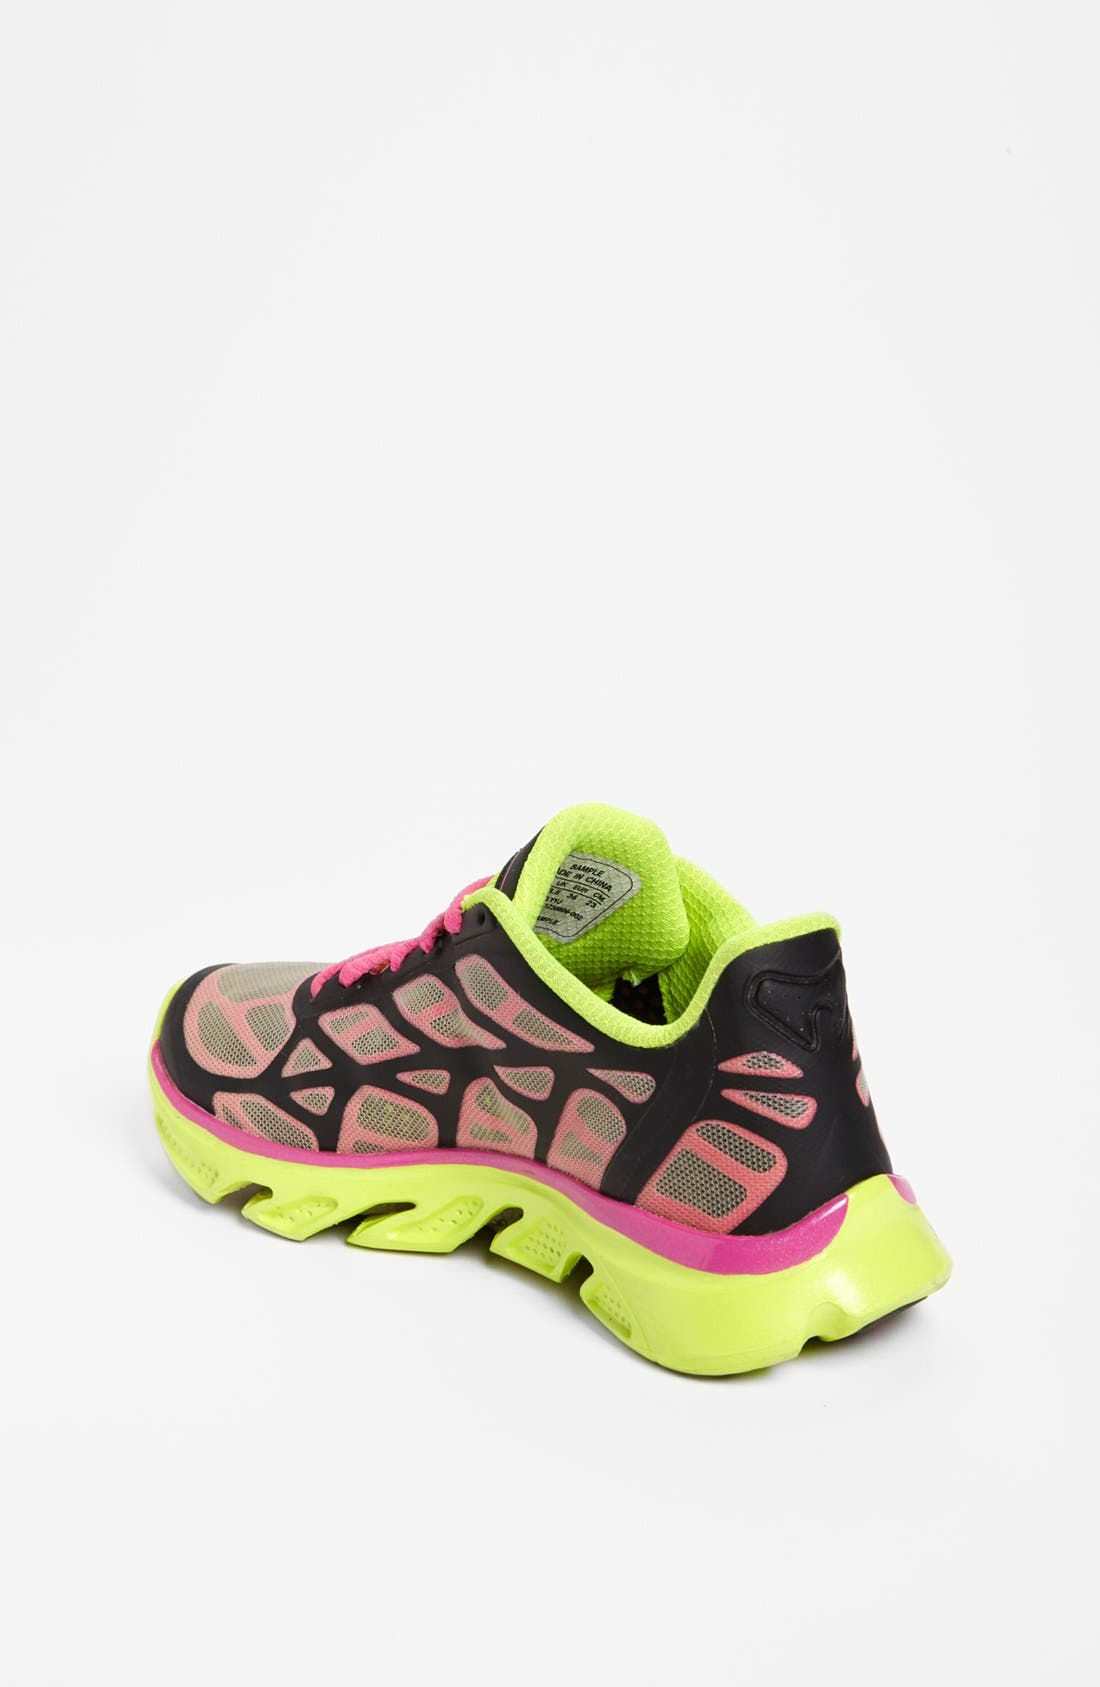 Alternate Image 2  - Under Armour 'Spine™ Vice' Athletic Shoe (Toddler, Little Kid & Big Kid)